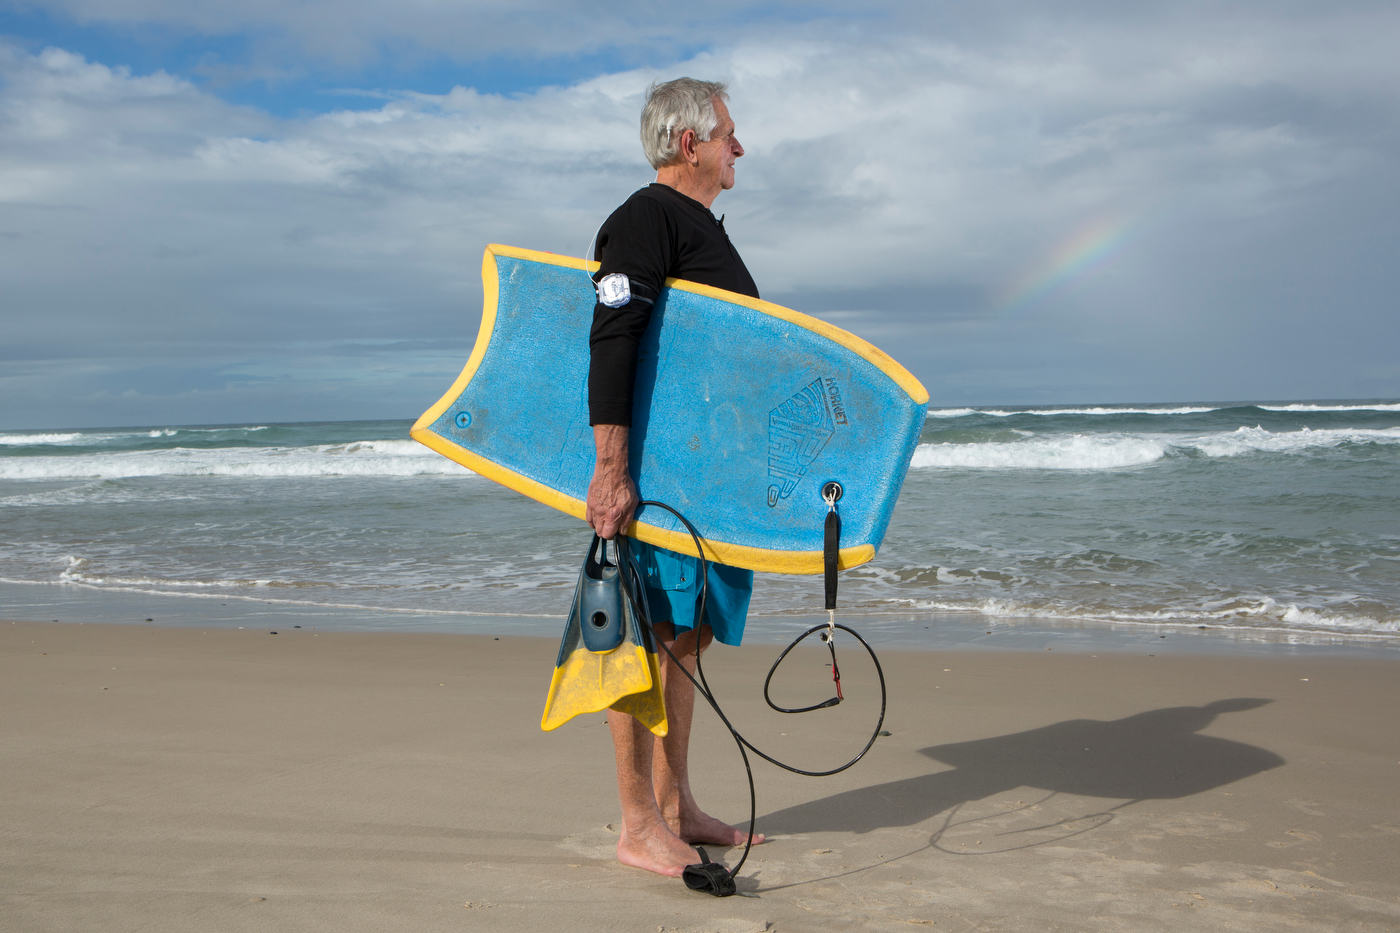 Steve Dawson, body surfer and Cochlear implant recipient, New Zealand, for Advanced Bionics.